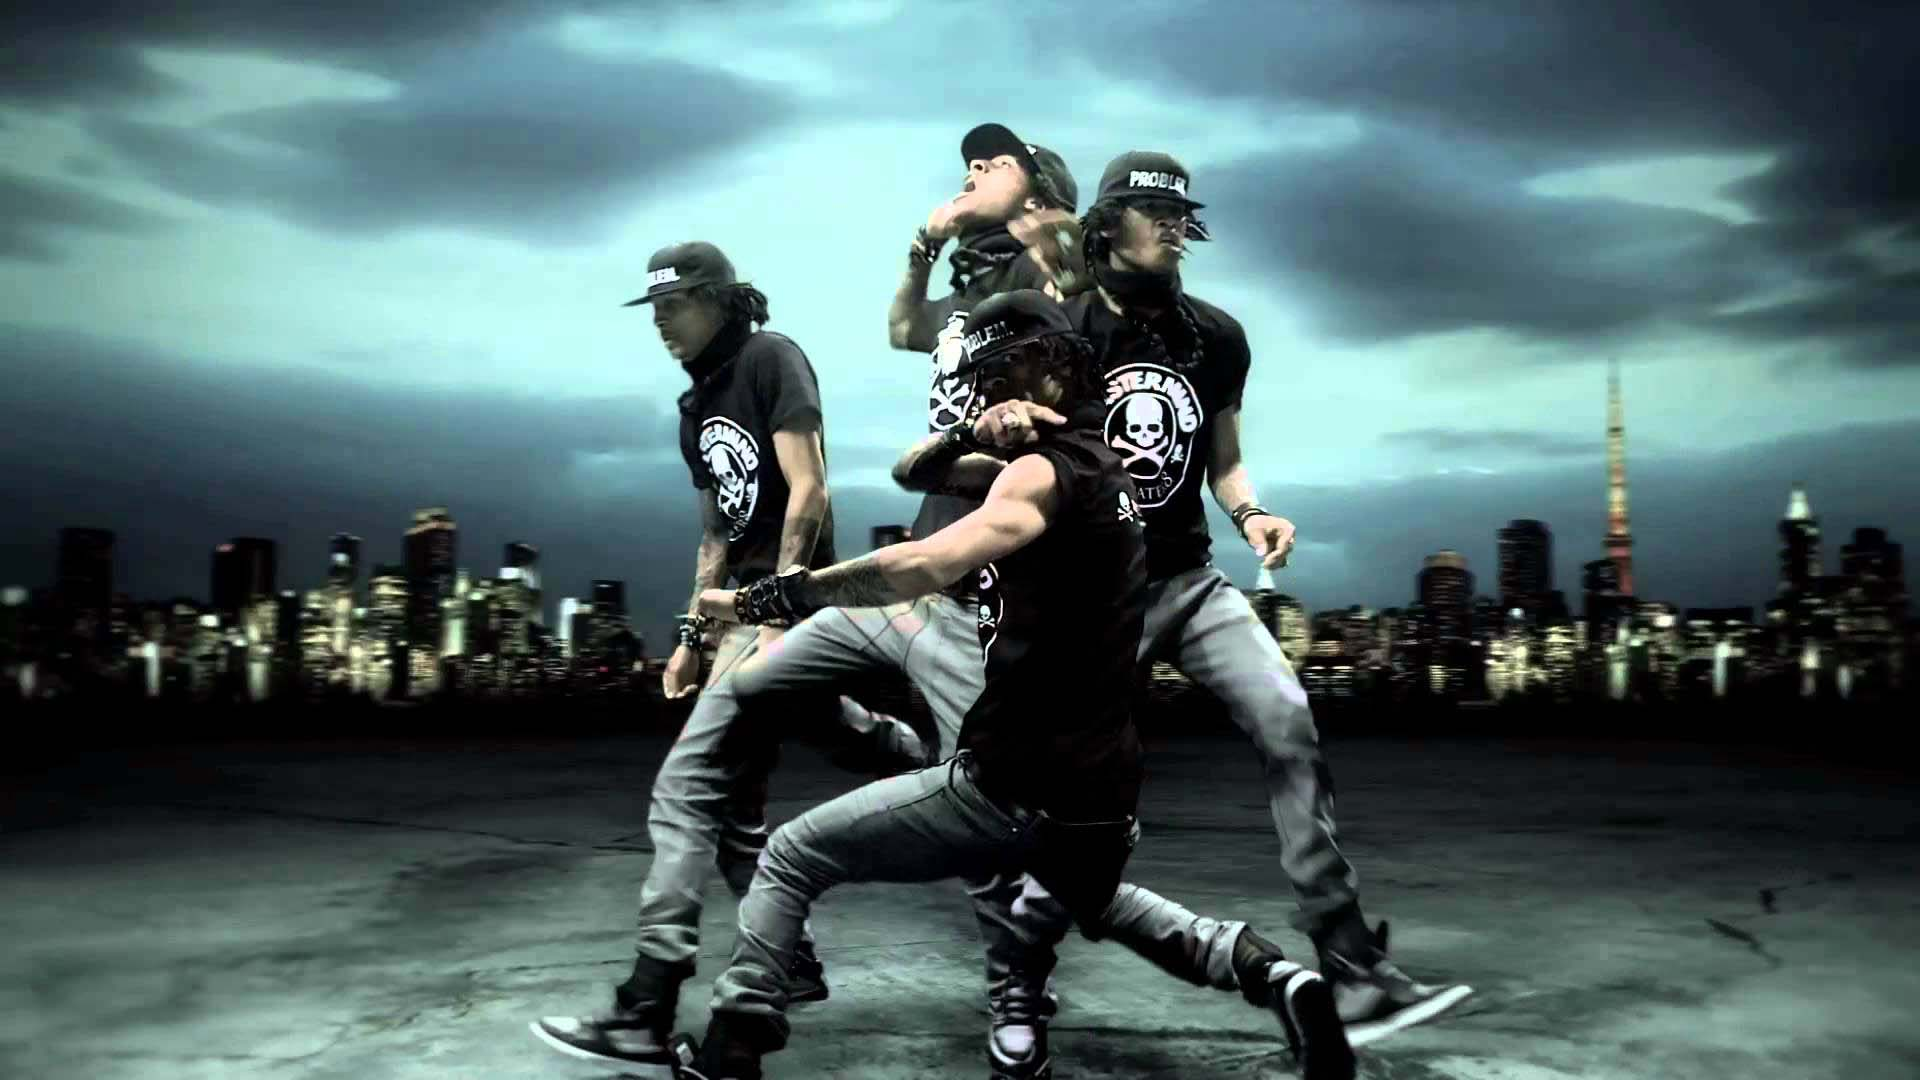 hight resolution of les twins clipart